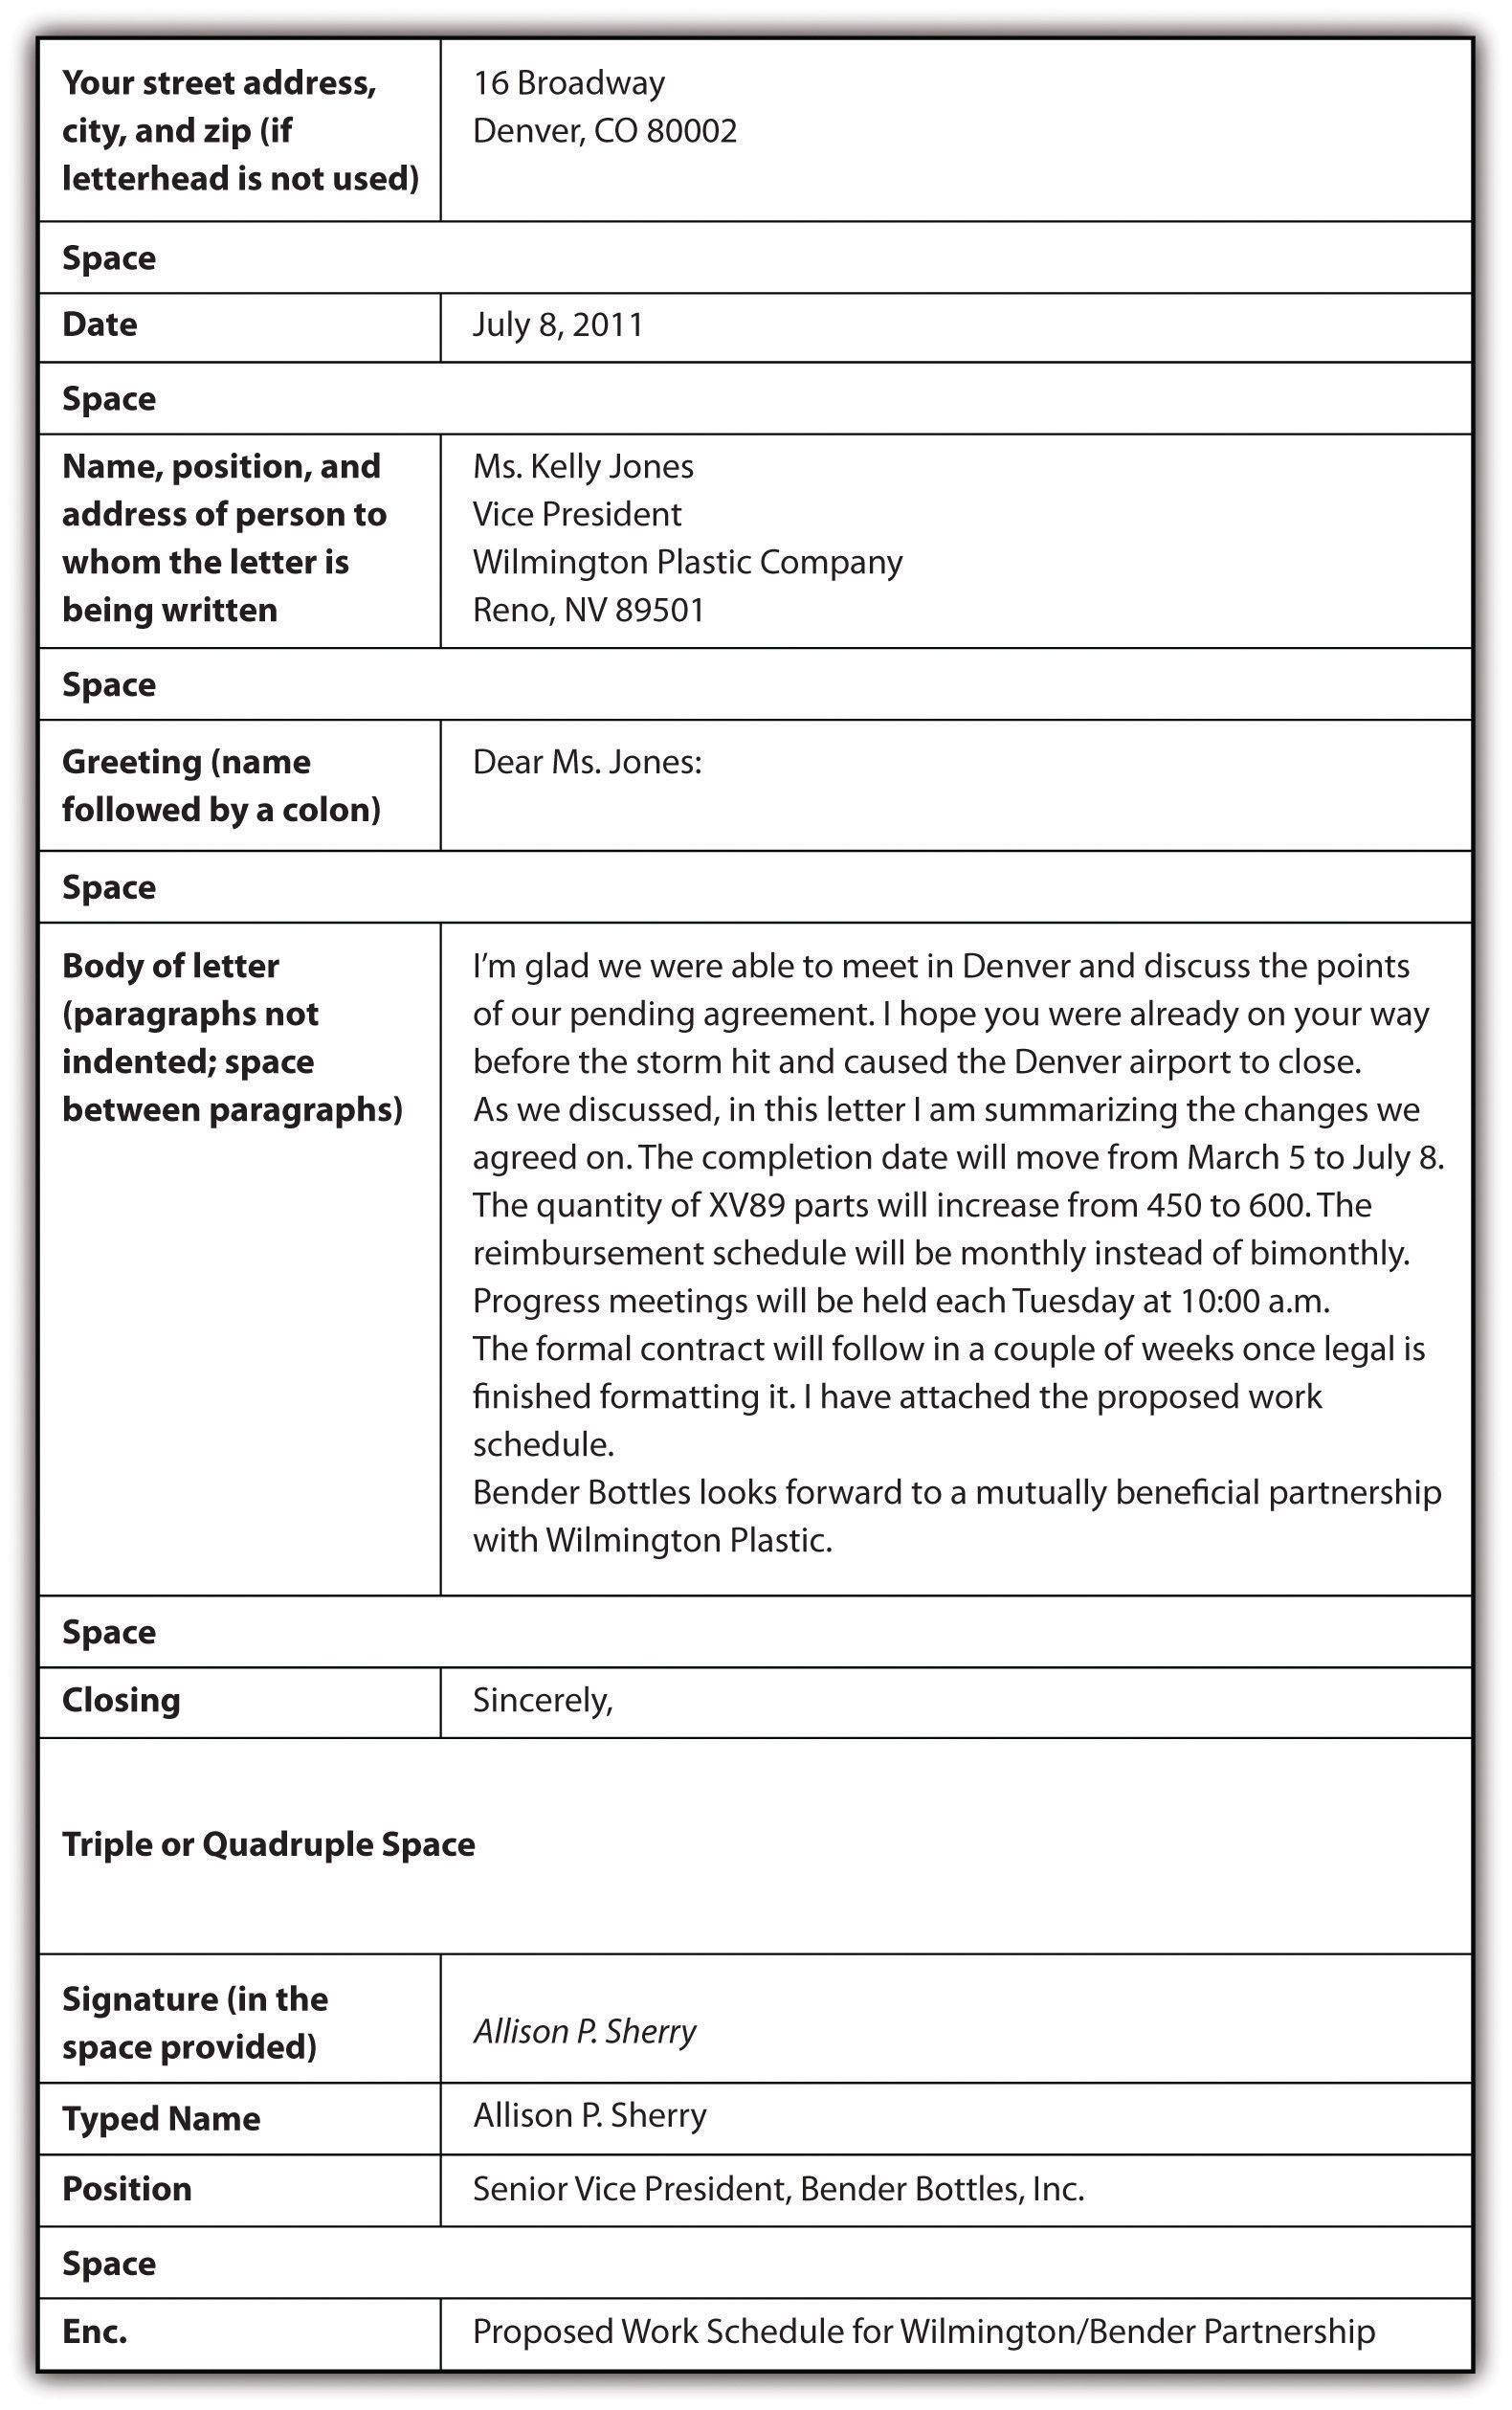 Business letter format example with attachment cheaphphosting Image collections